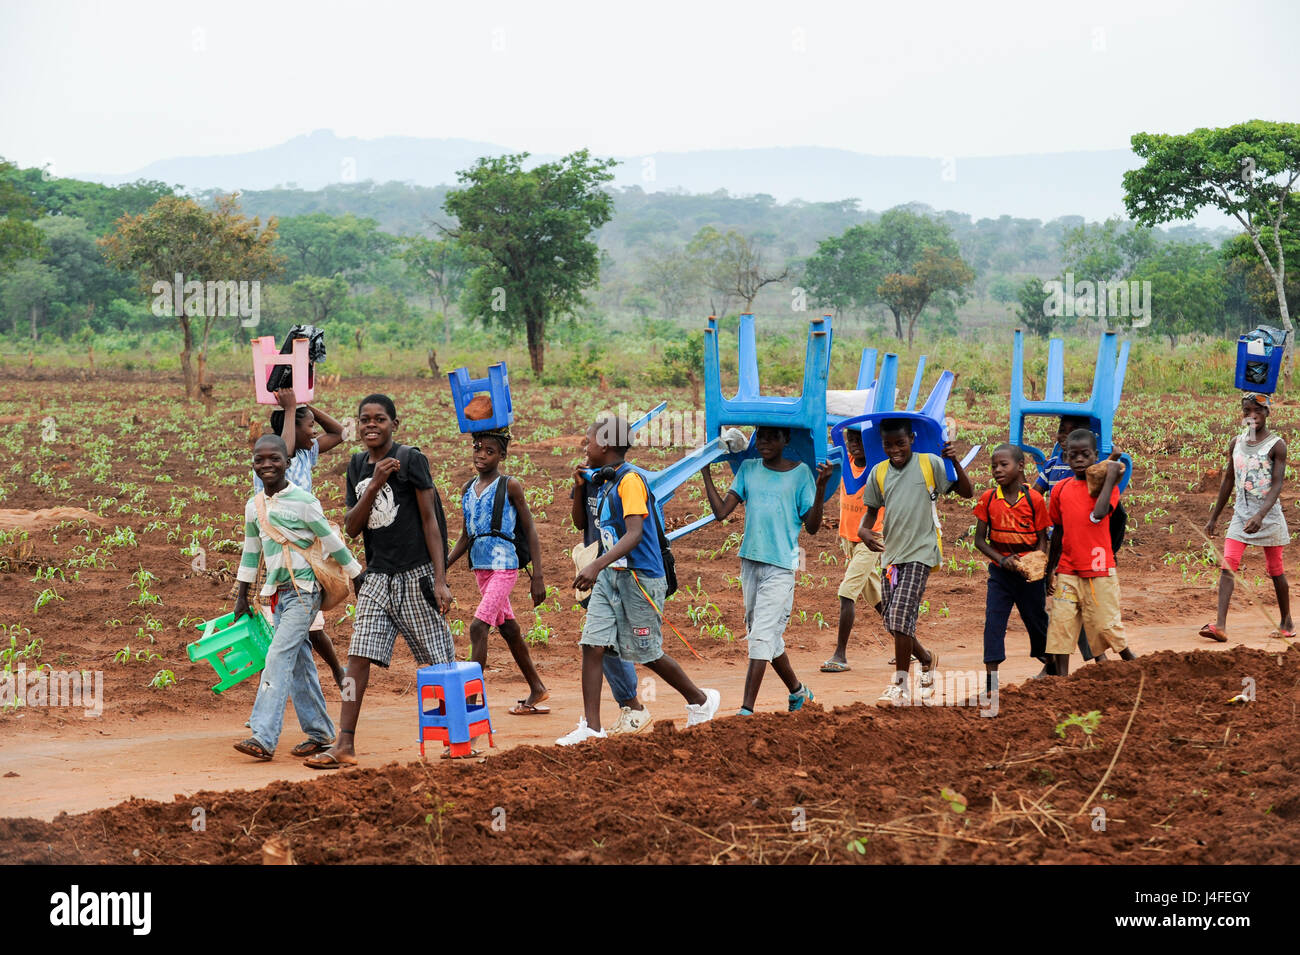 ANGOLA Kwanza Sul, village Kassombo, children on way to school, each child must bring his own plastic chair as the - Stock Image